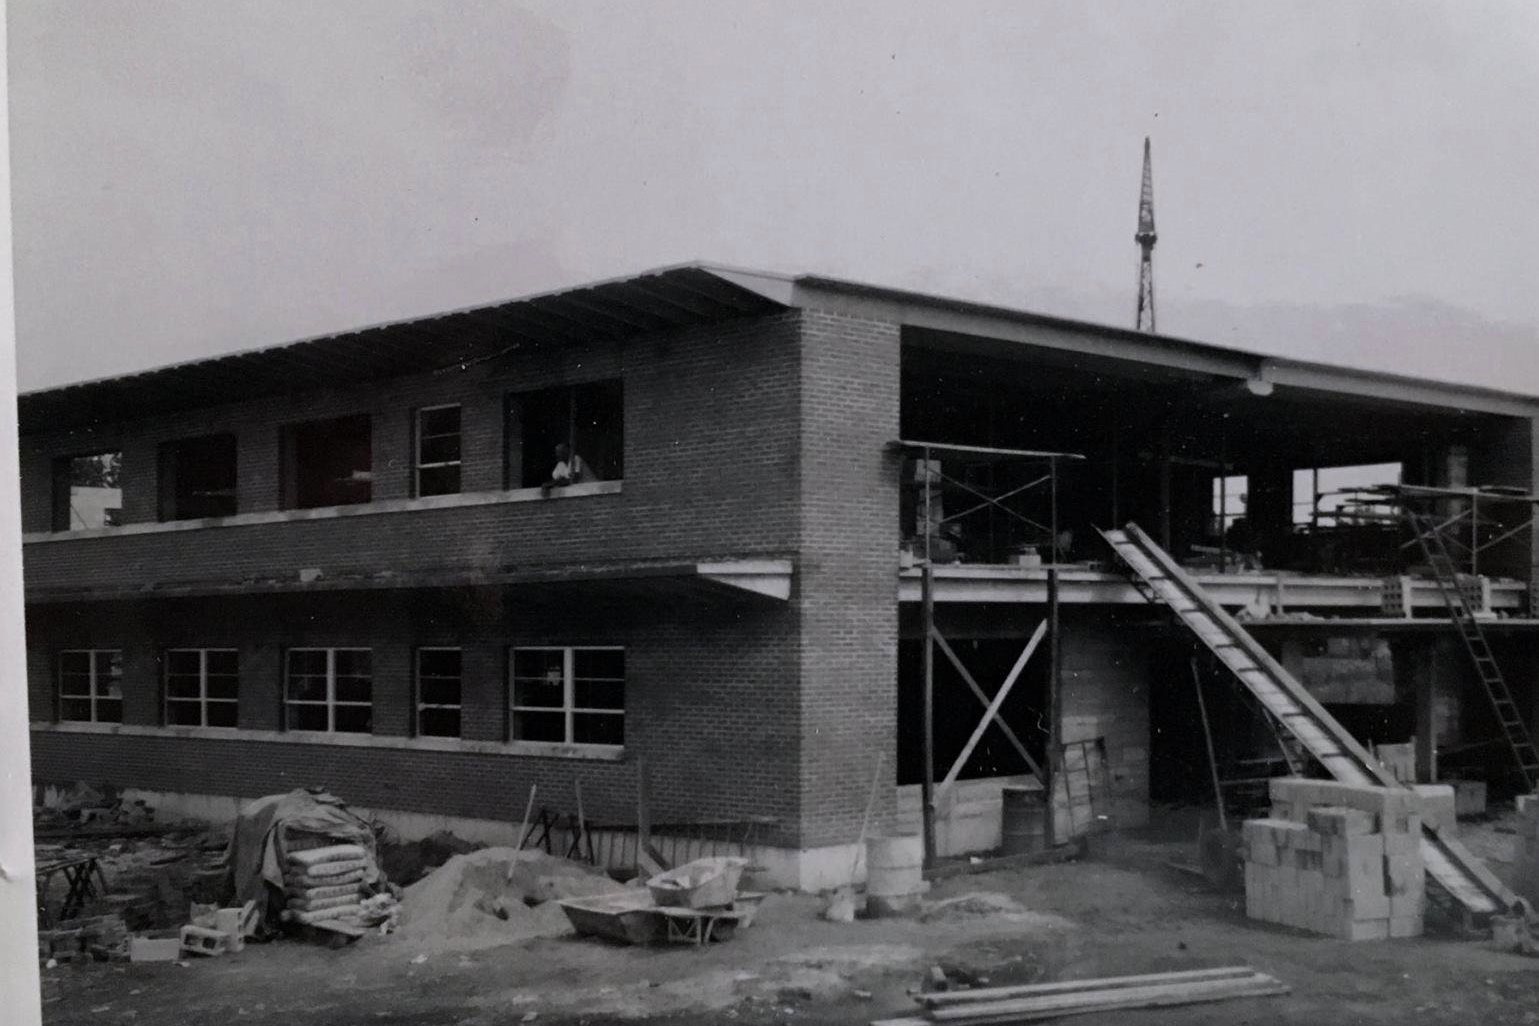 The Johnson, Depp & Quisenberry building under construction in June of 1958. This view is looking at the front north-west corner of the building.